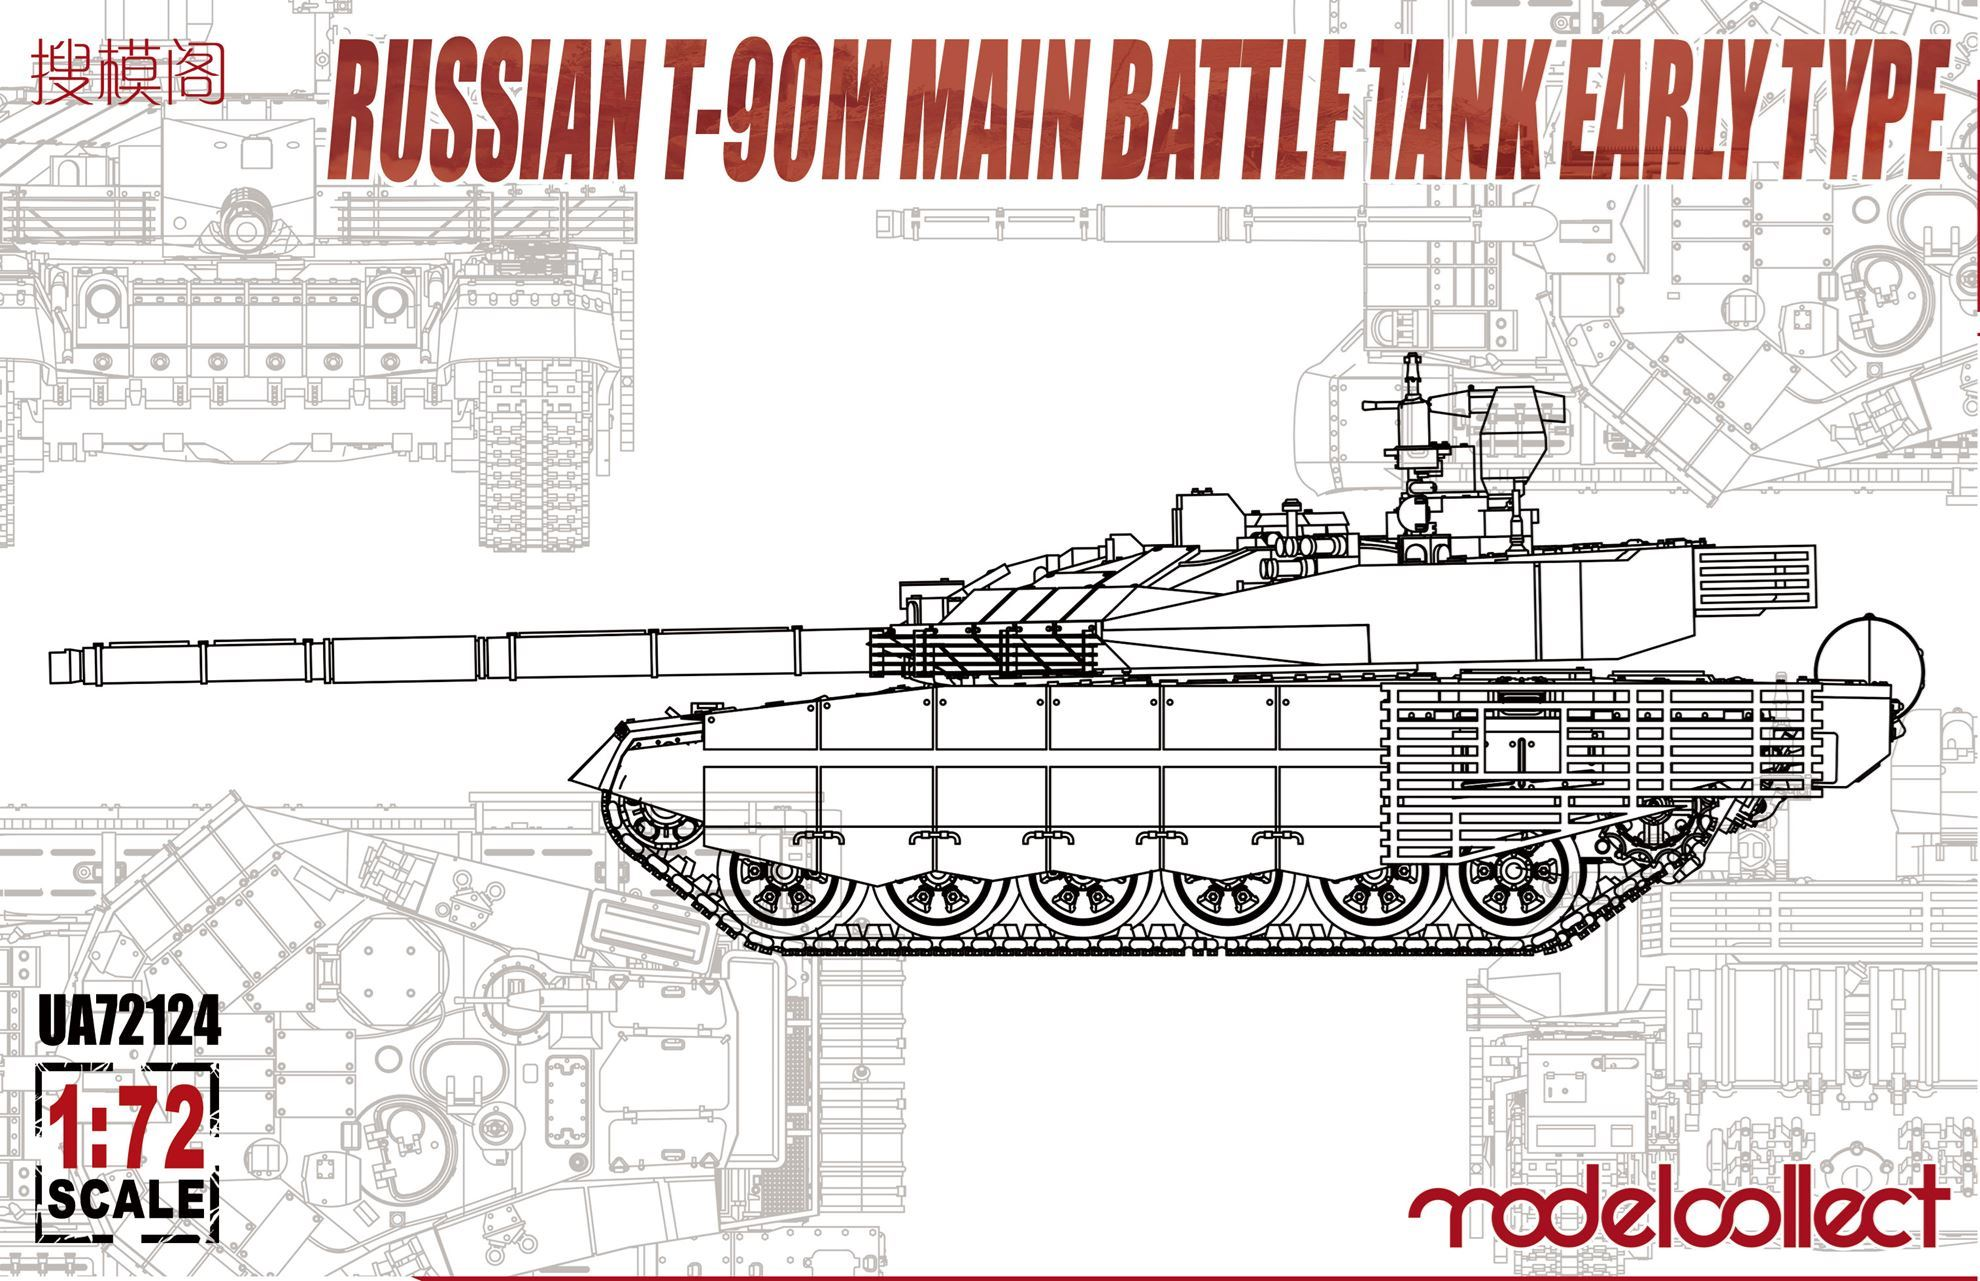 0004256_russian-t-90m-main-battle-tank-early-type